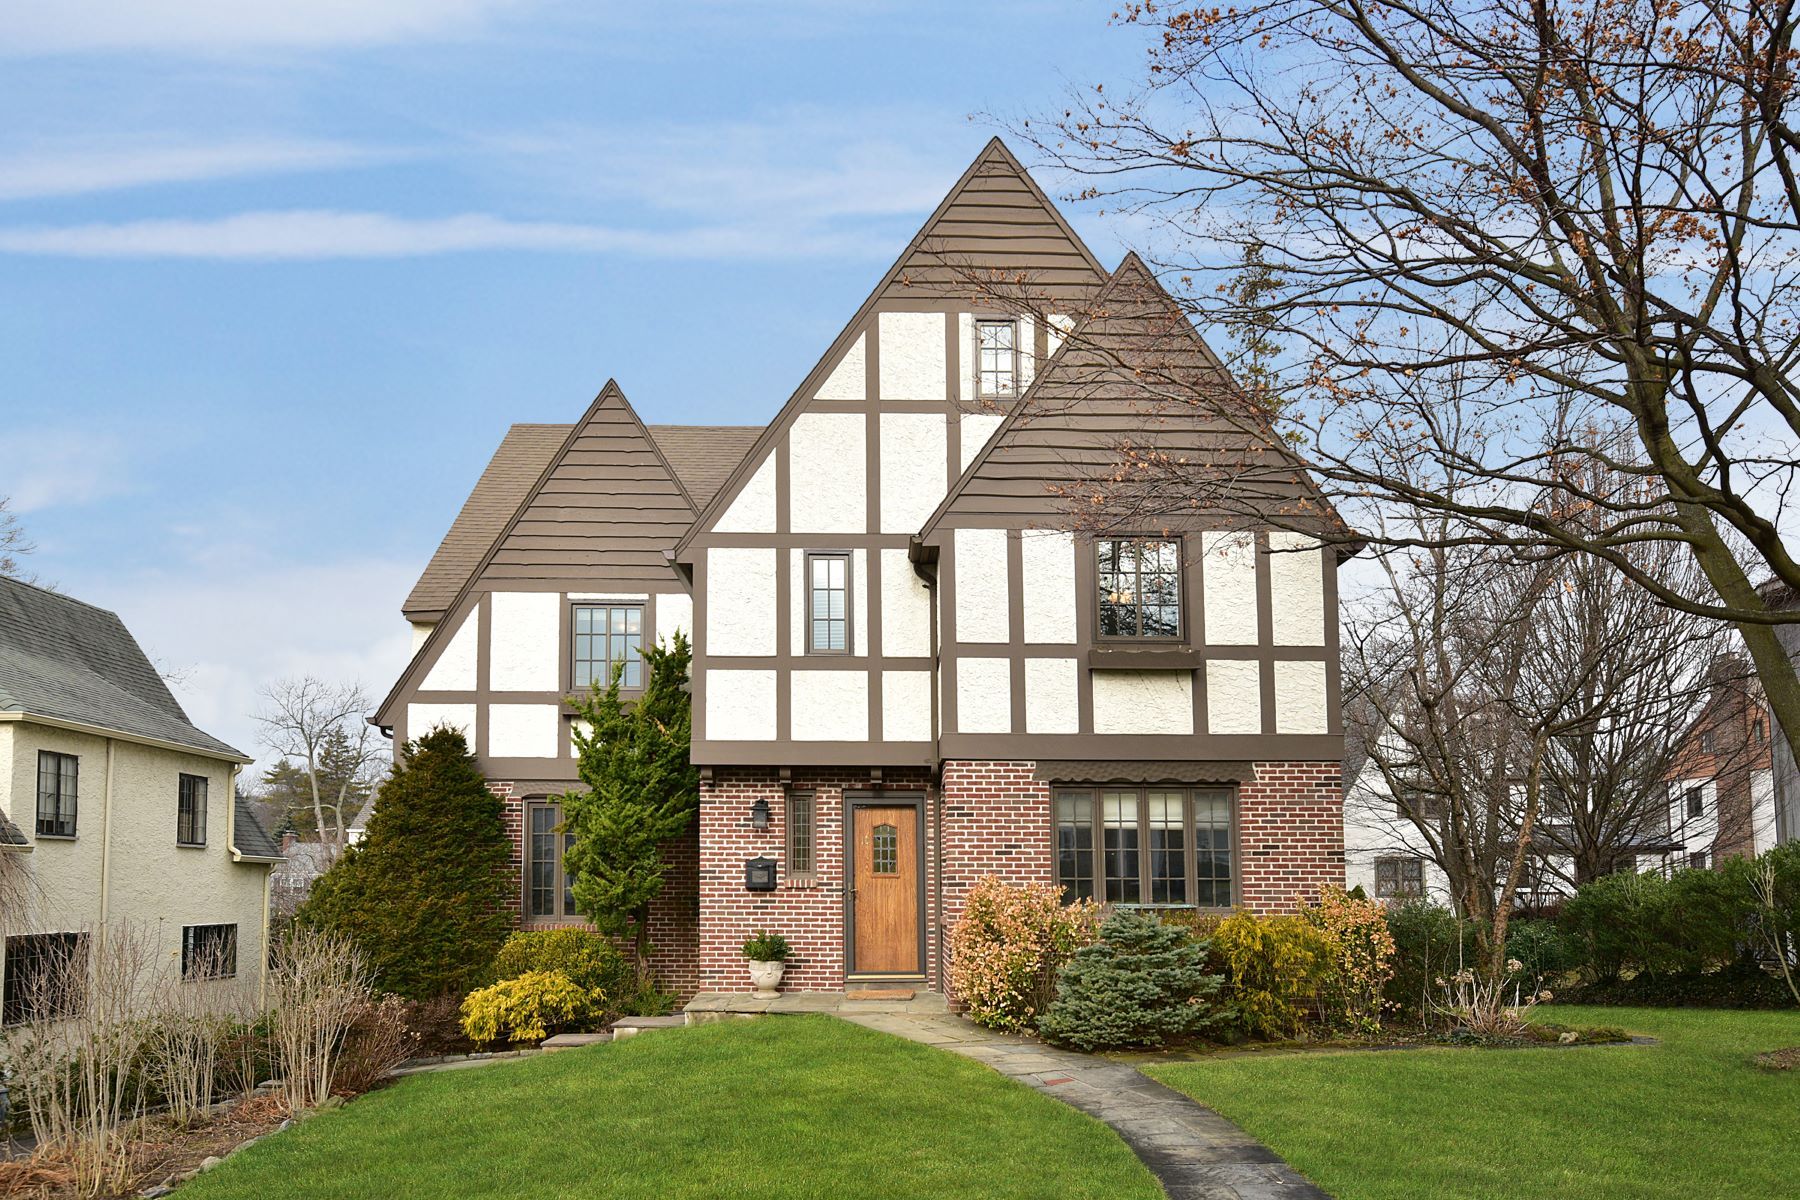 Single Family Home for Sale at Welcoming Home in Prime Location 10 Byron Lane, Larchmont, New York, 10538 United States